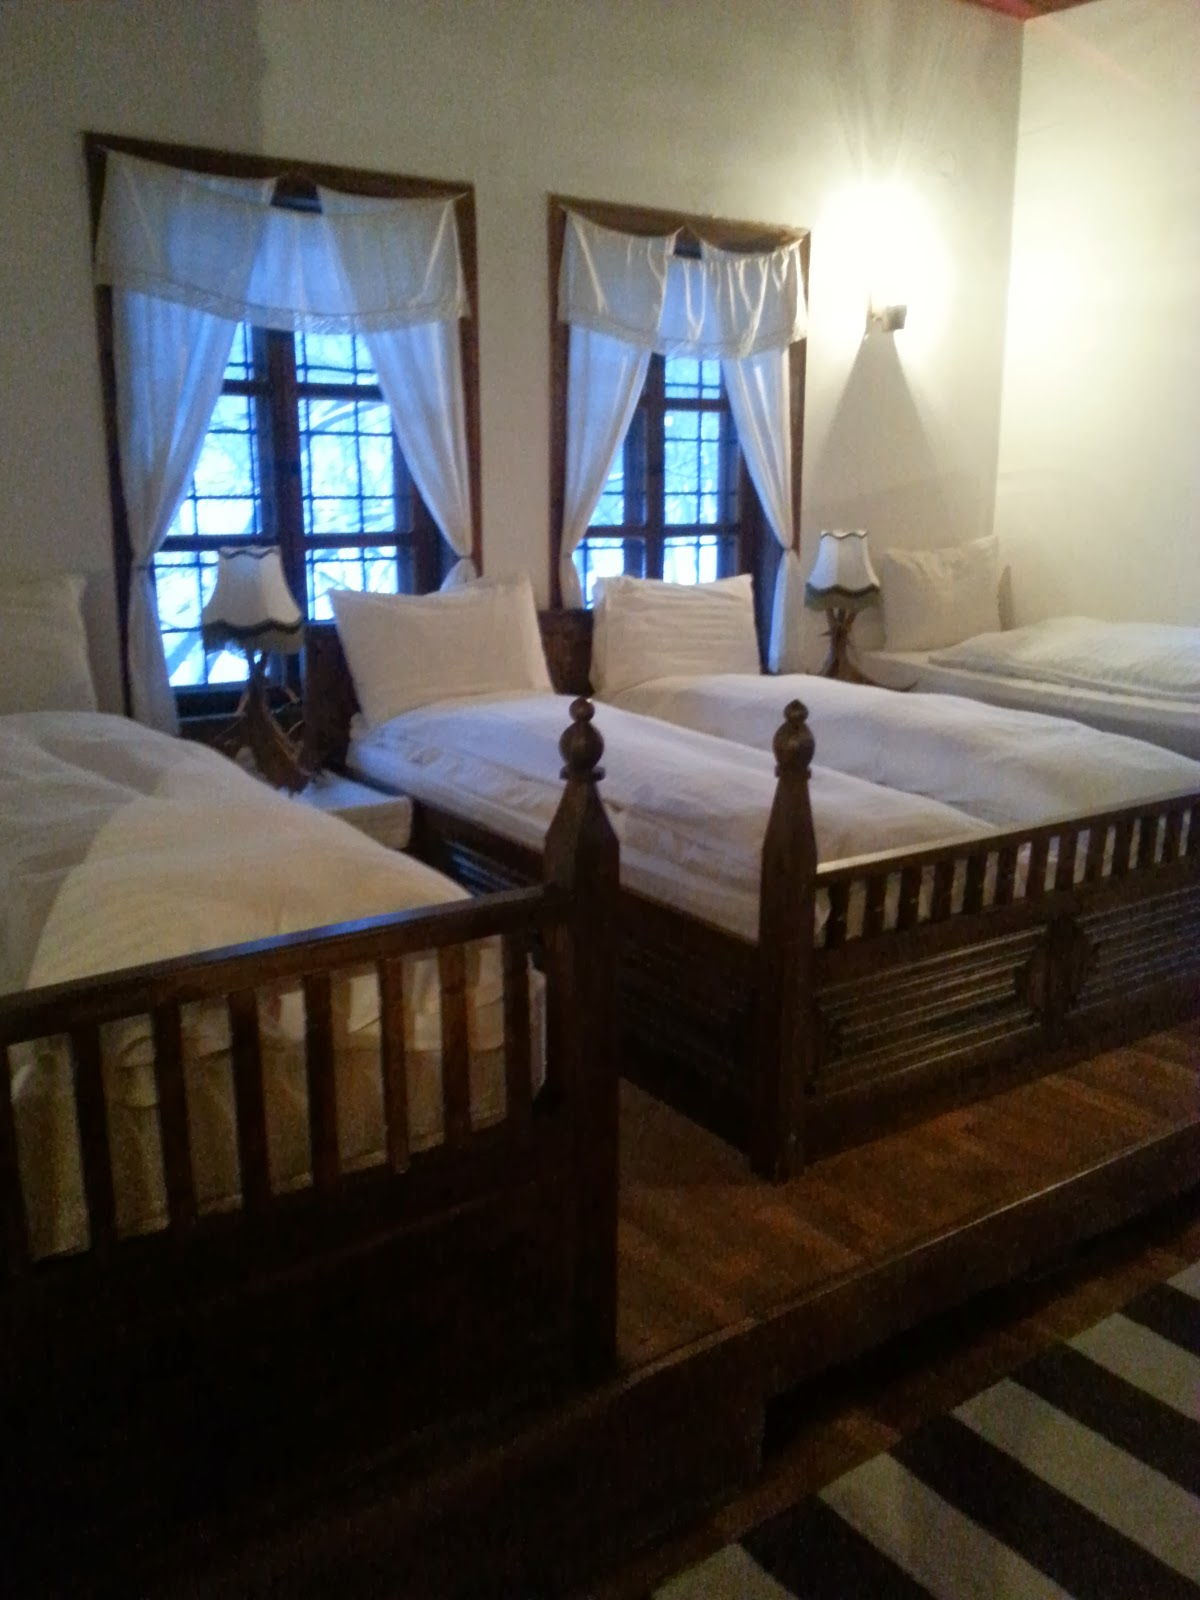 Arbanashki han bedroom